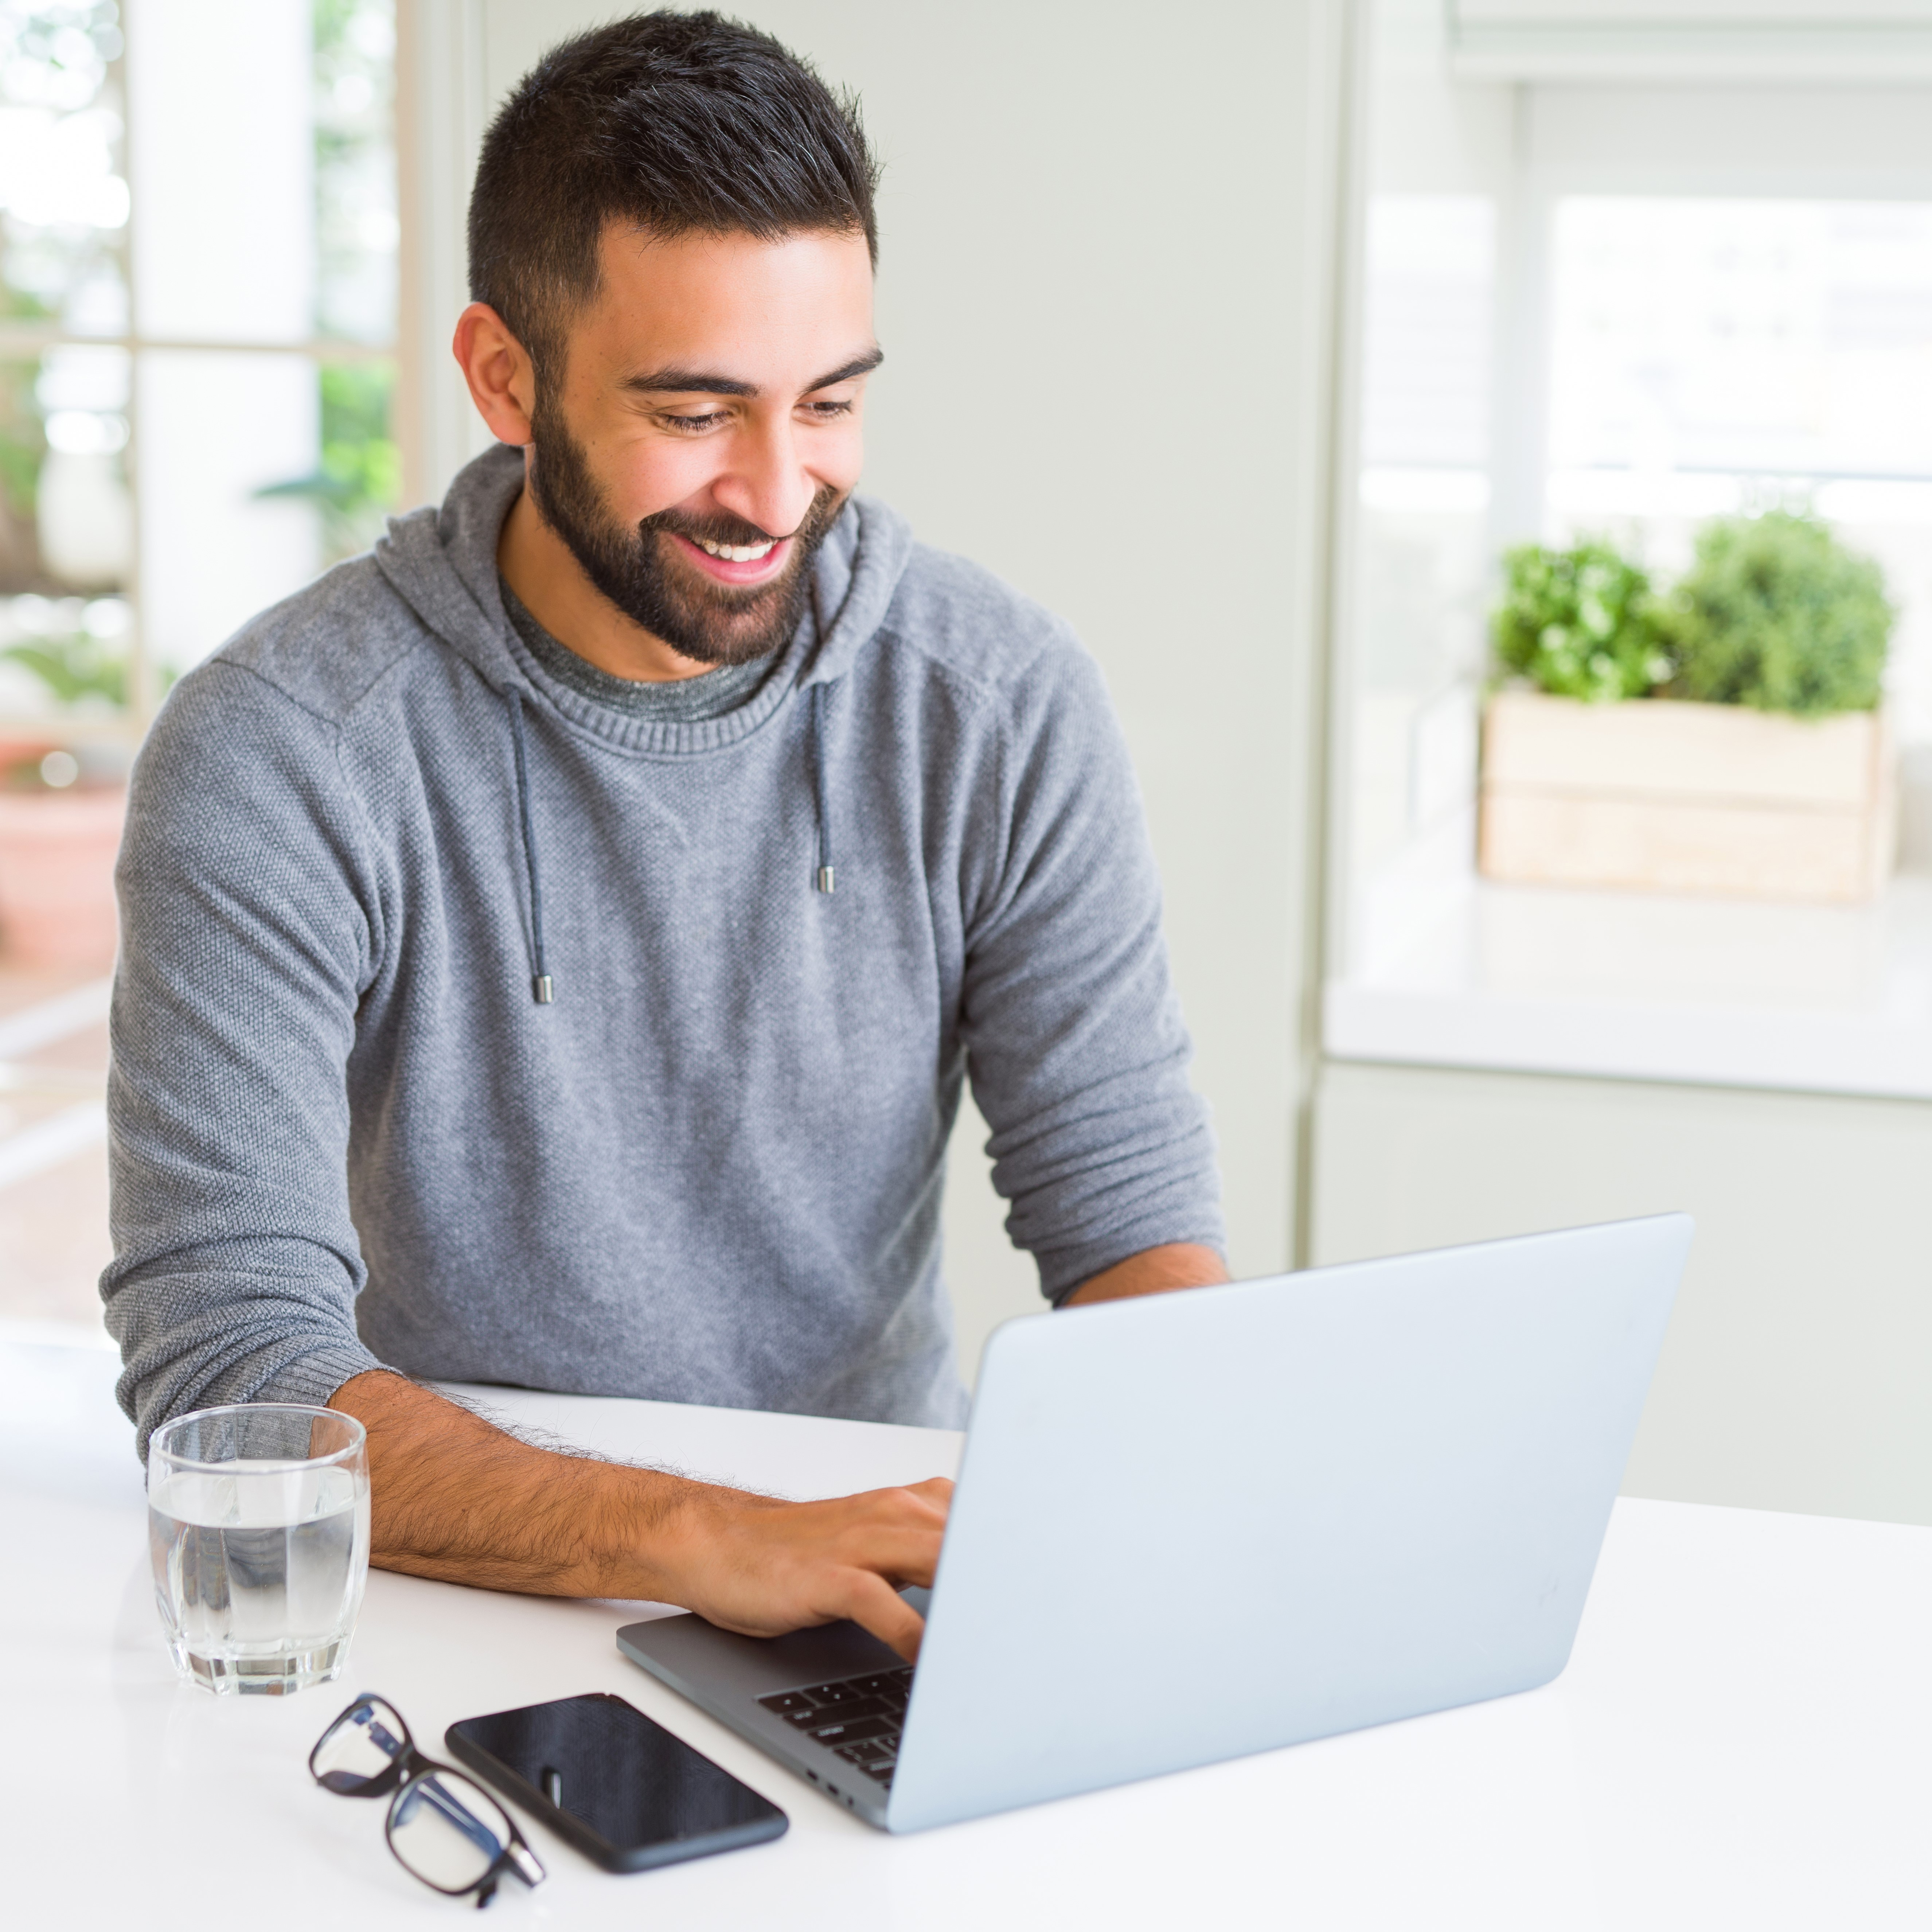 man working at computer and drinking water